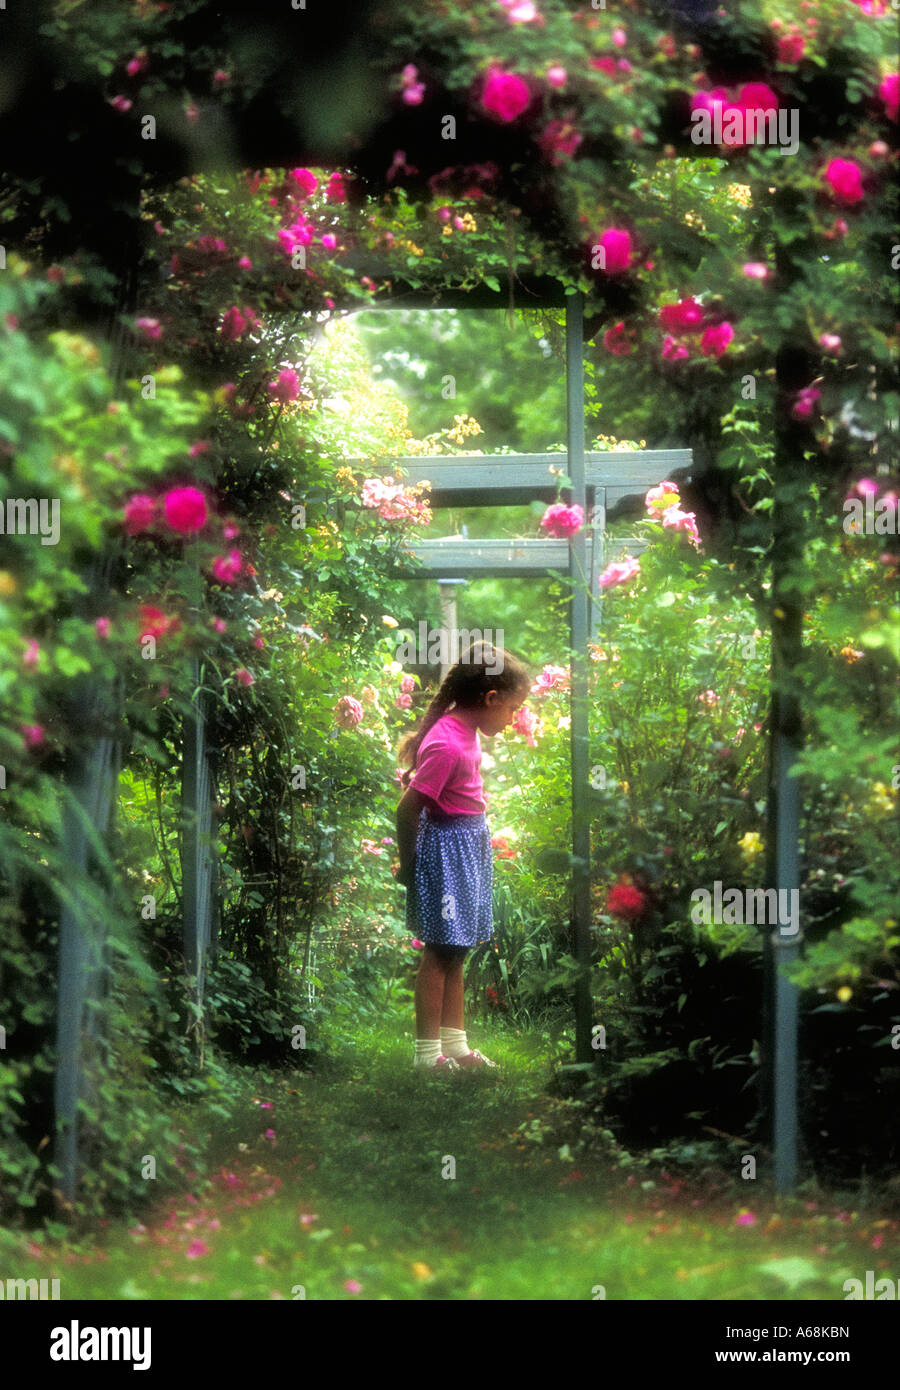 Young girl stops to smell a flower in a rose garden - Stock Image